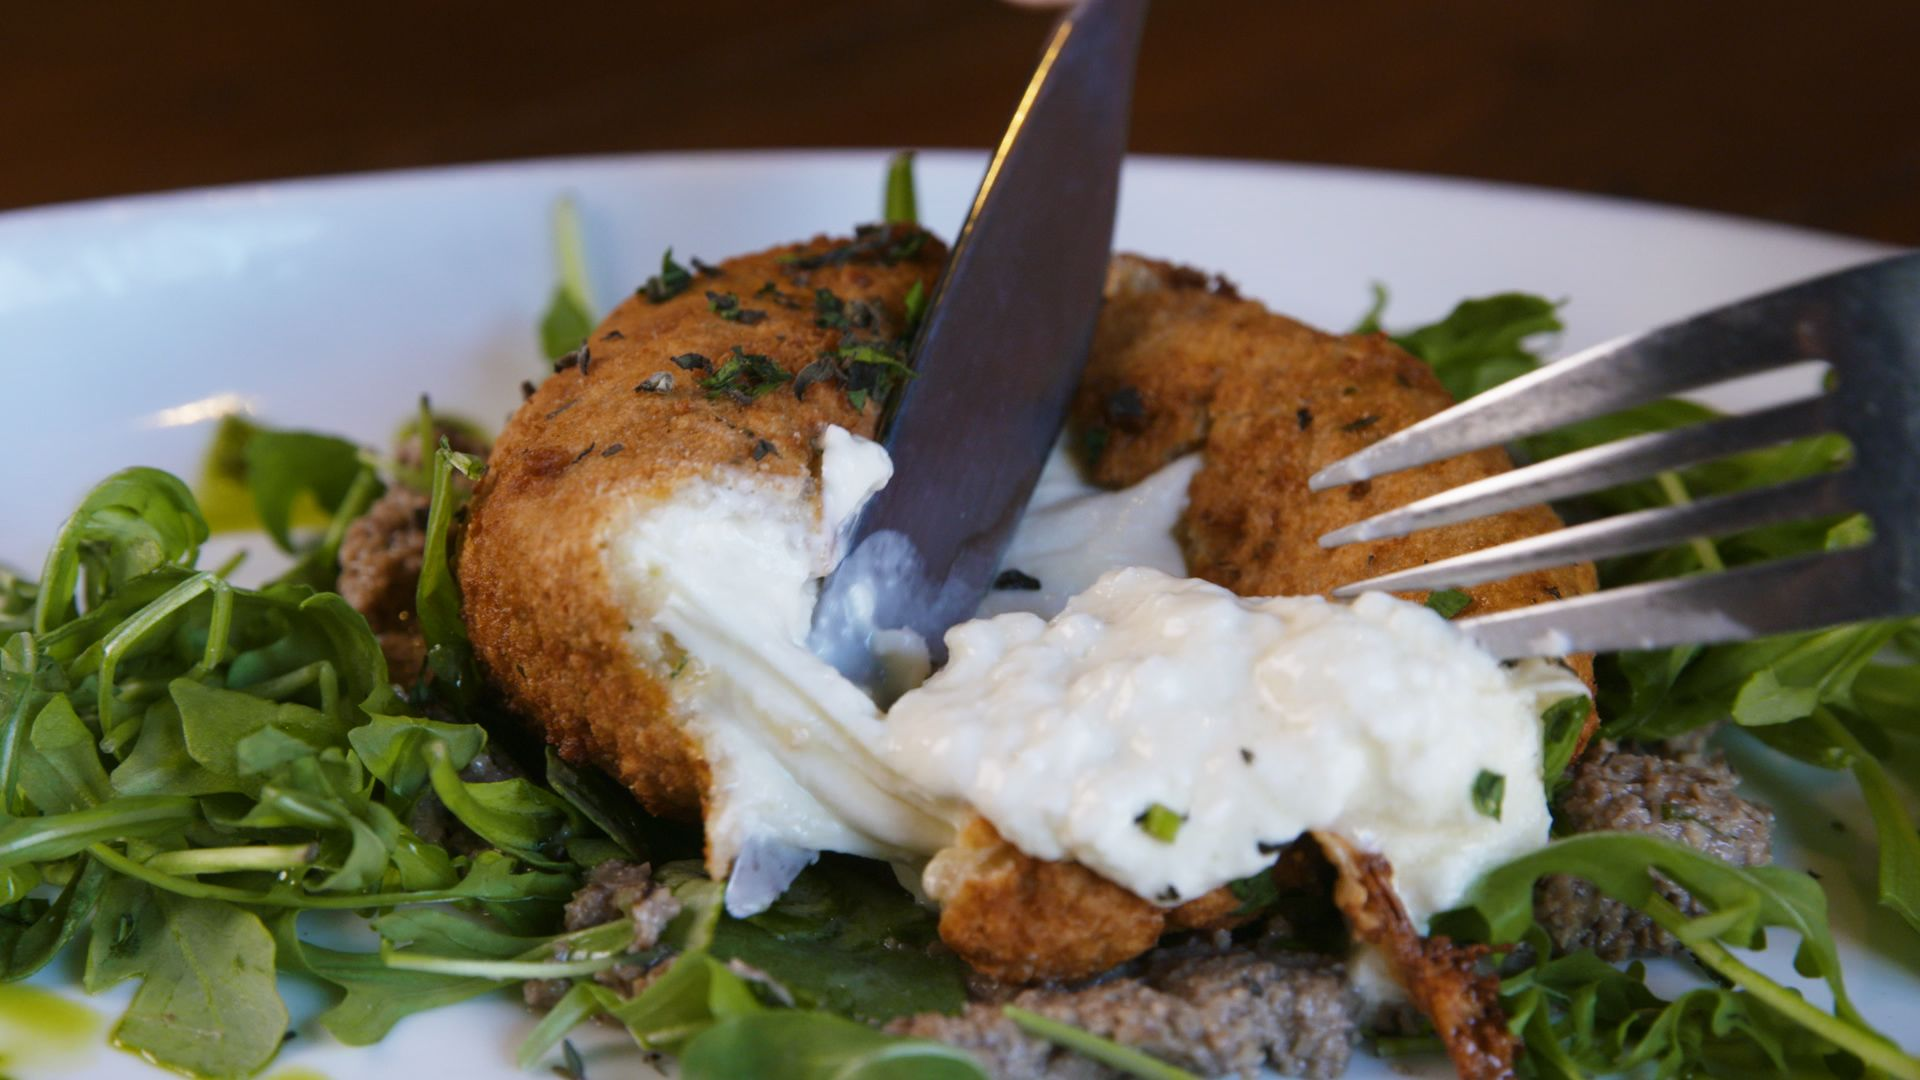 This Deep-Fried Burrata Explodes On Command